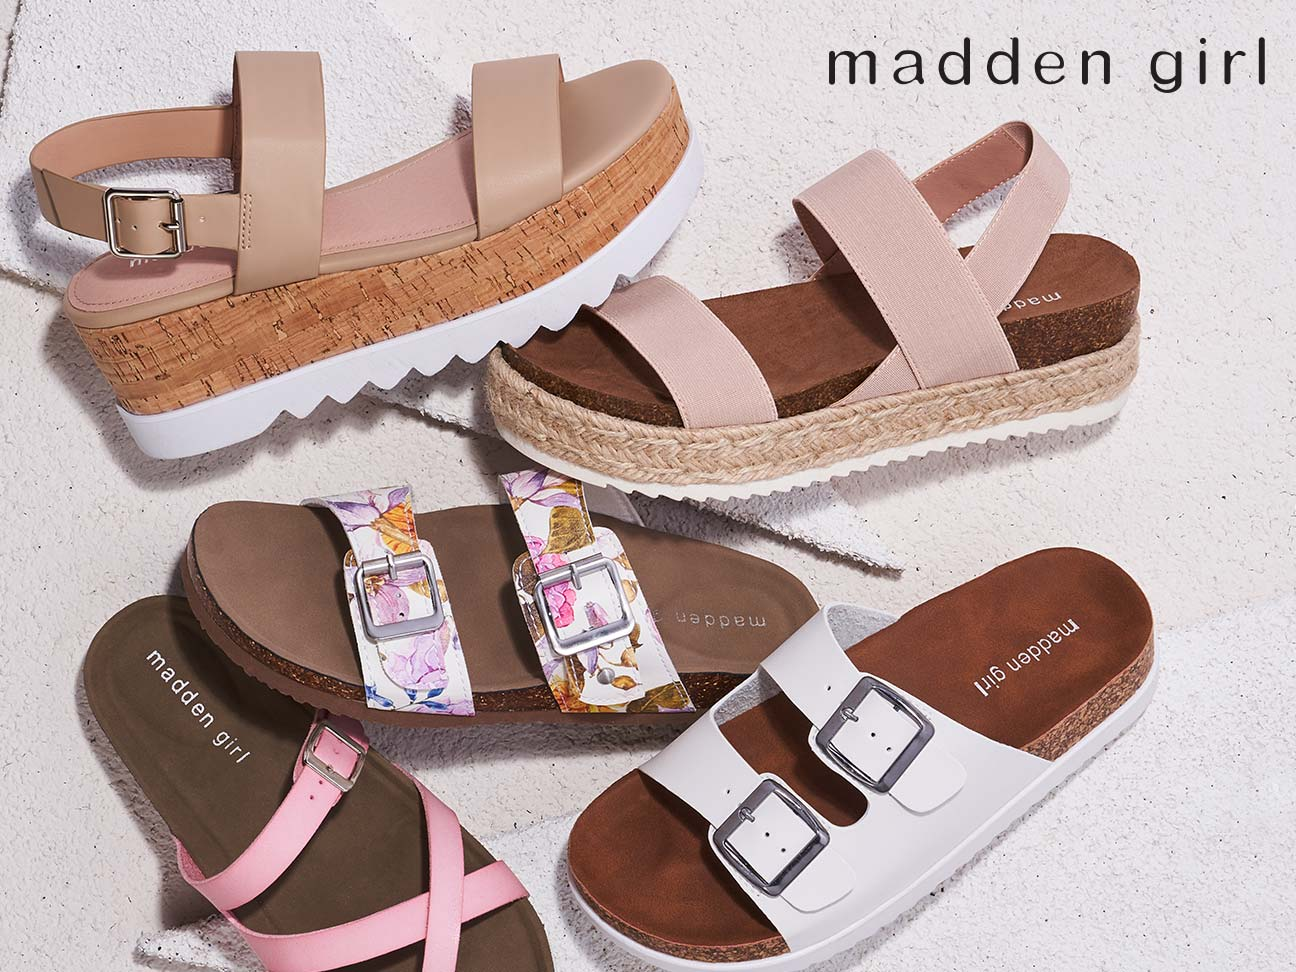 various styles of madden girl sandals